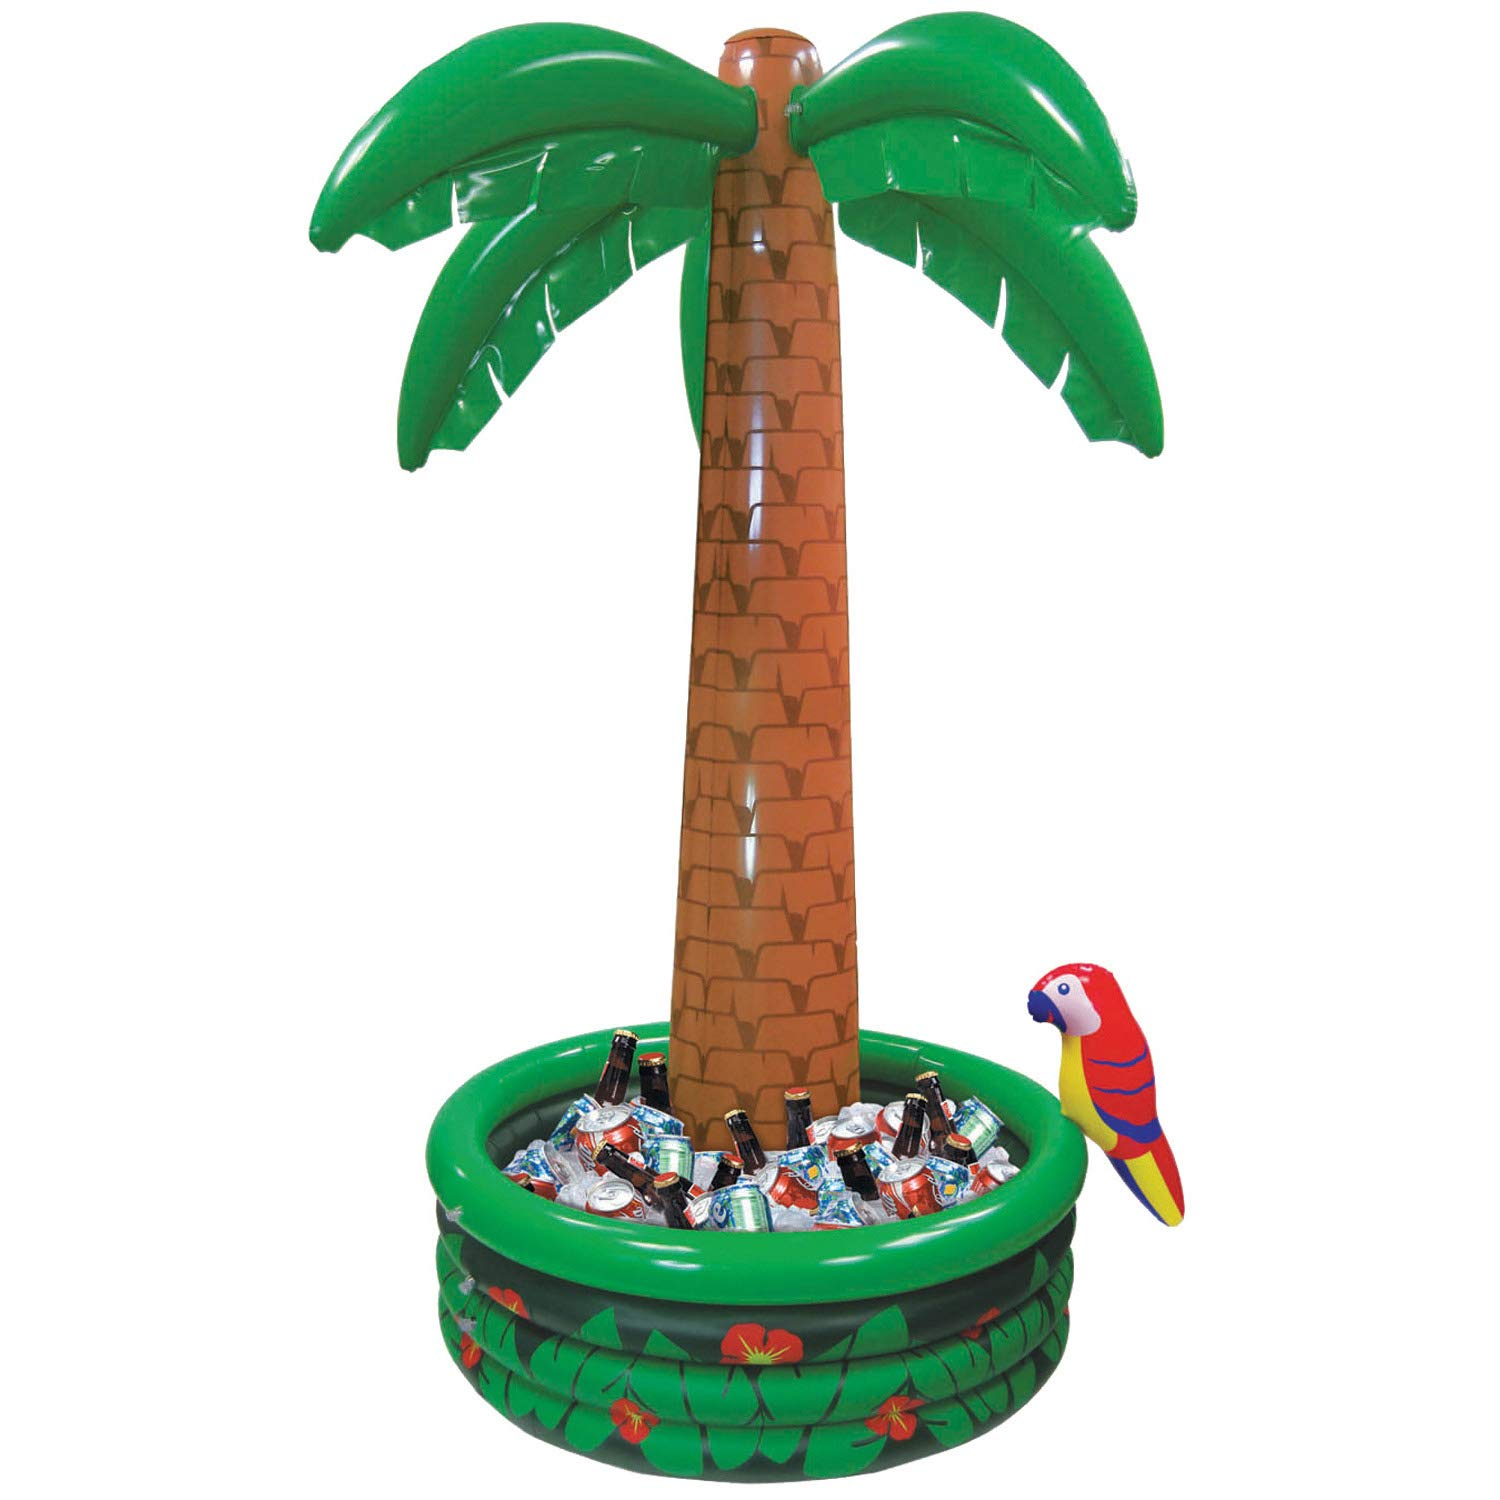 Amscan Jumbo Inflatable Palm Tree Party Cooler, 6' x 4' by amscan